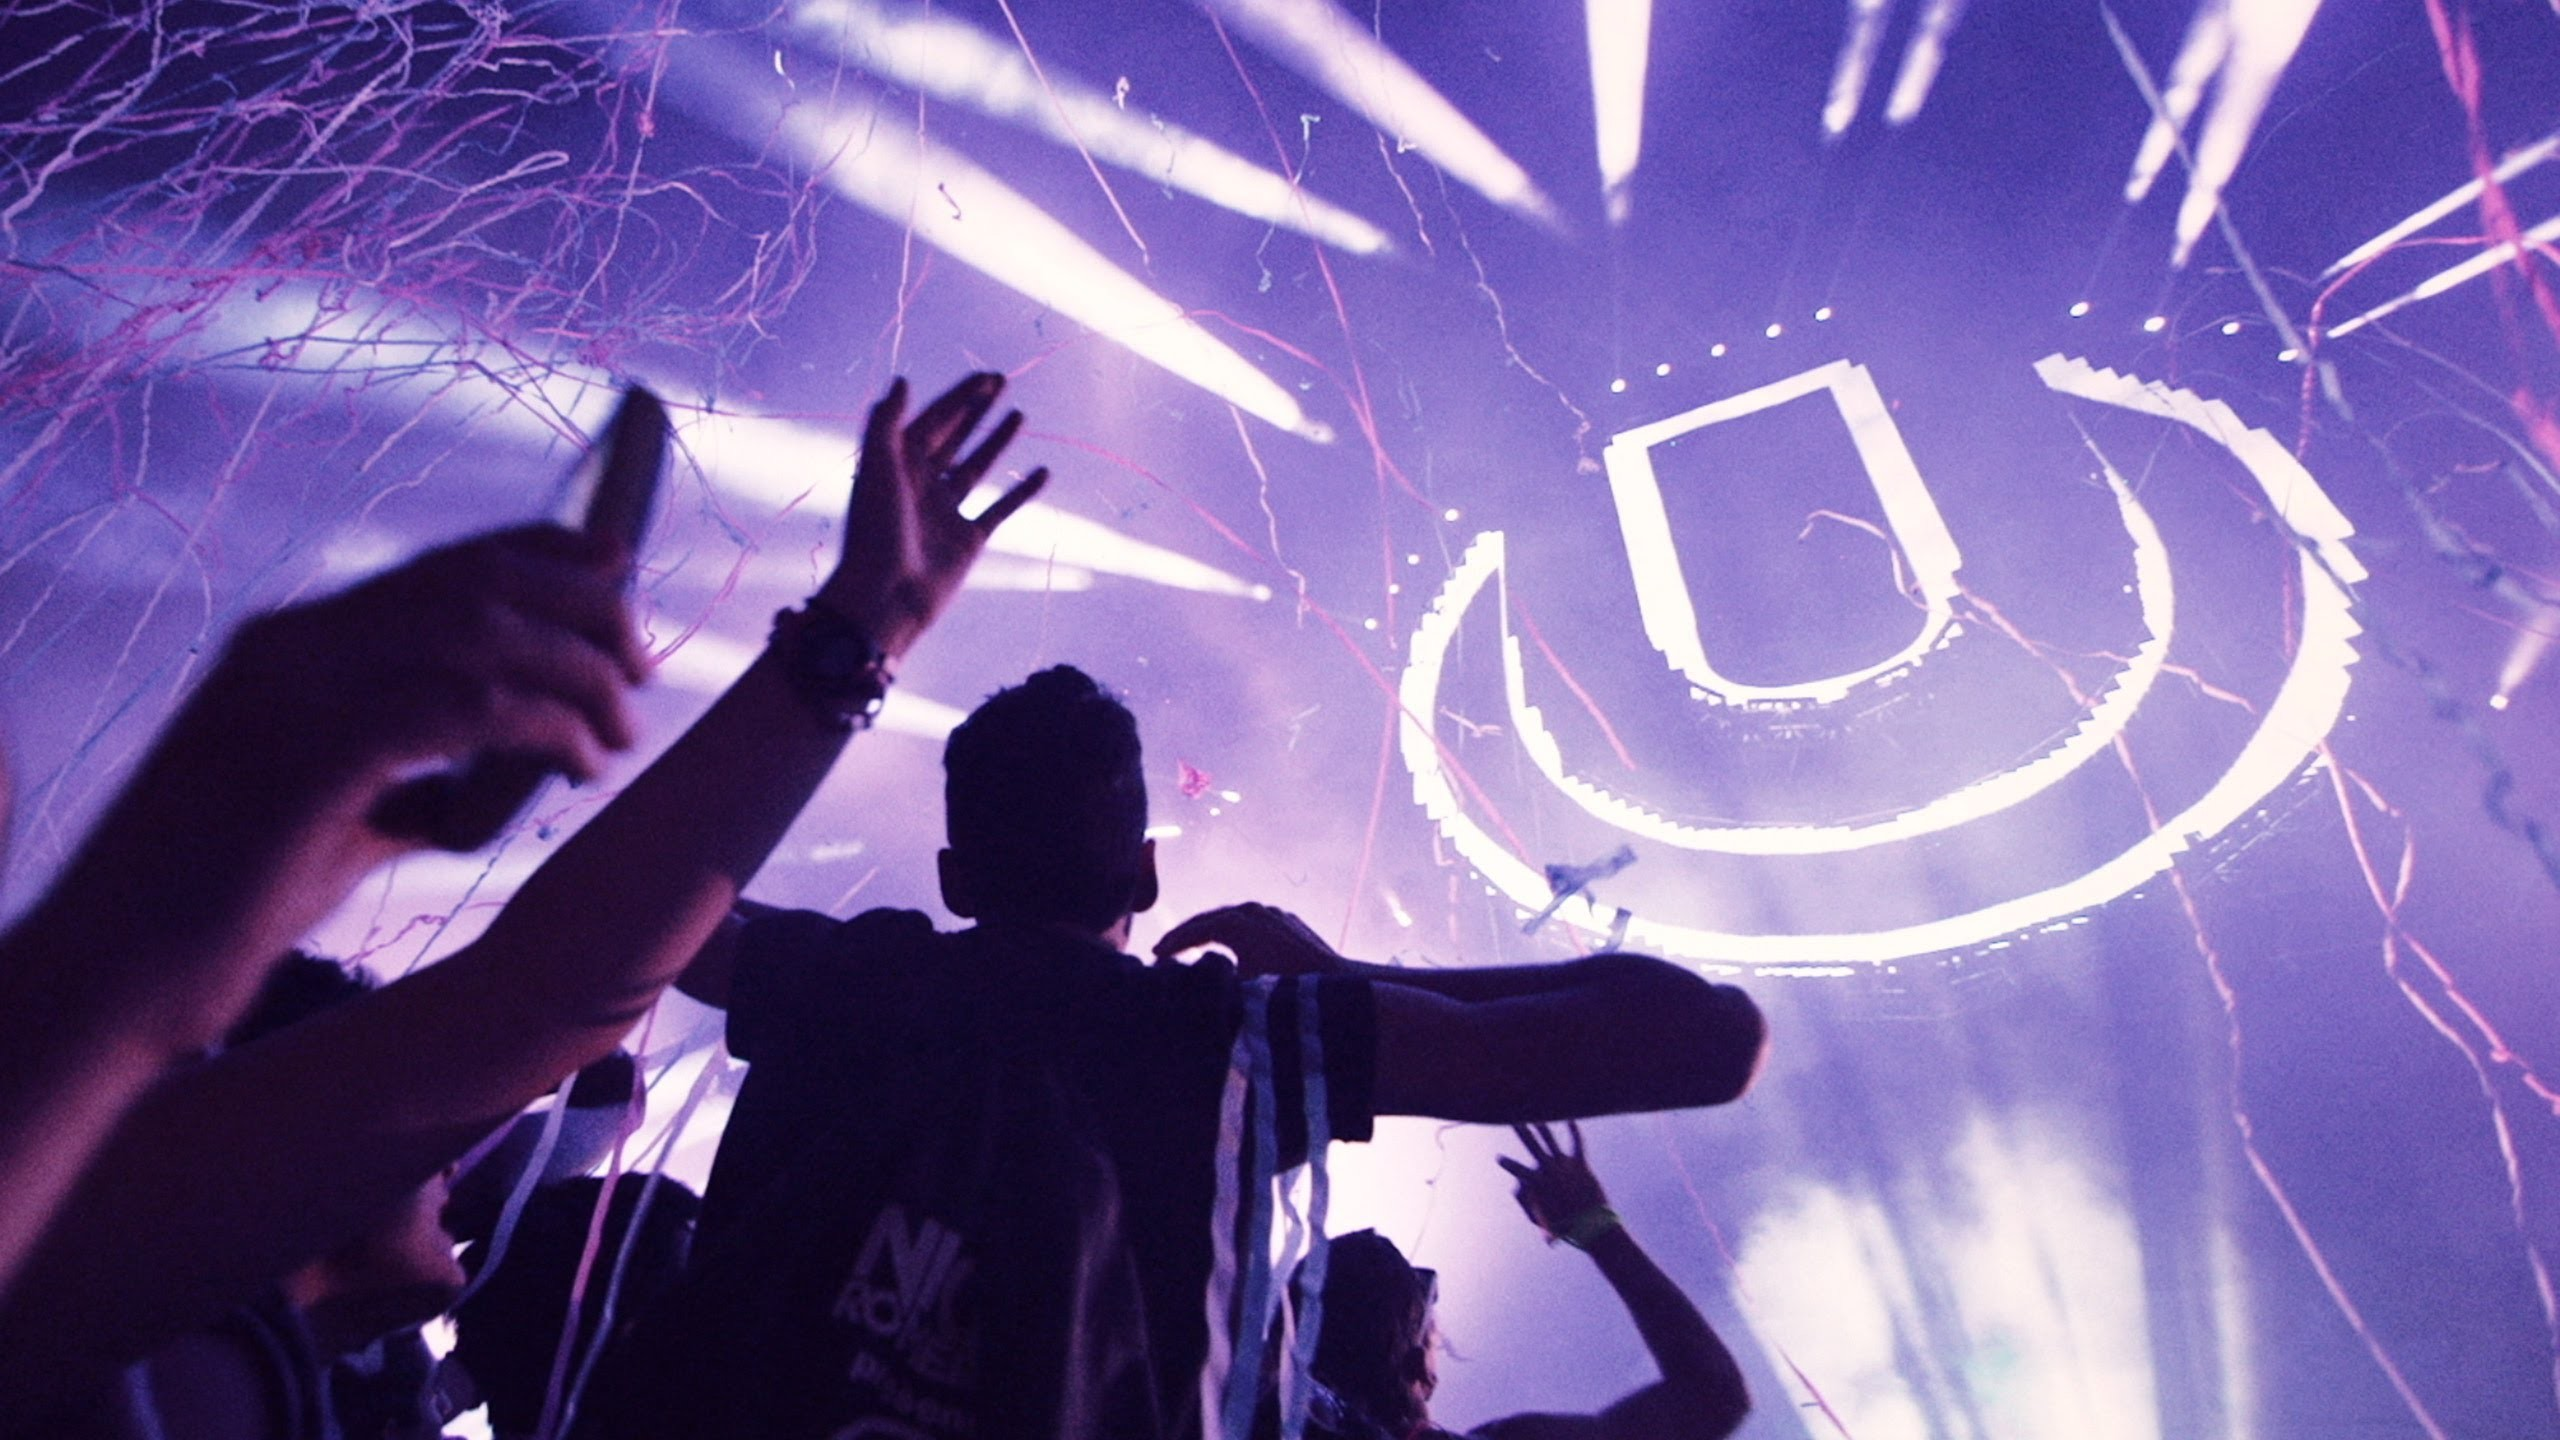 Check out the complete Ultra Music Festival schedule and line-up